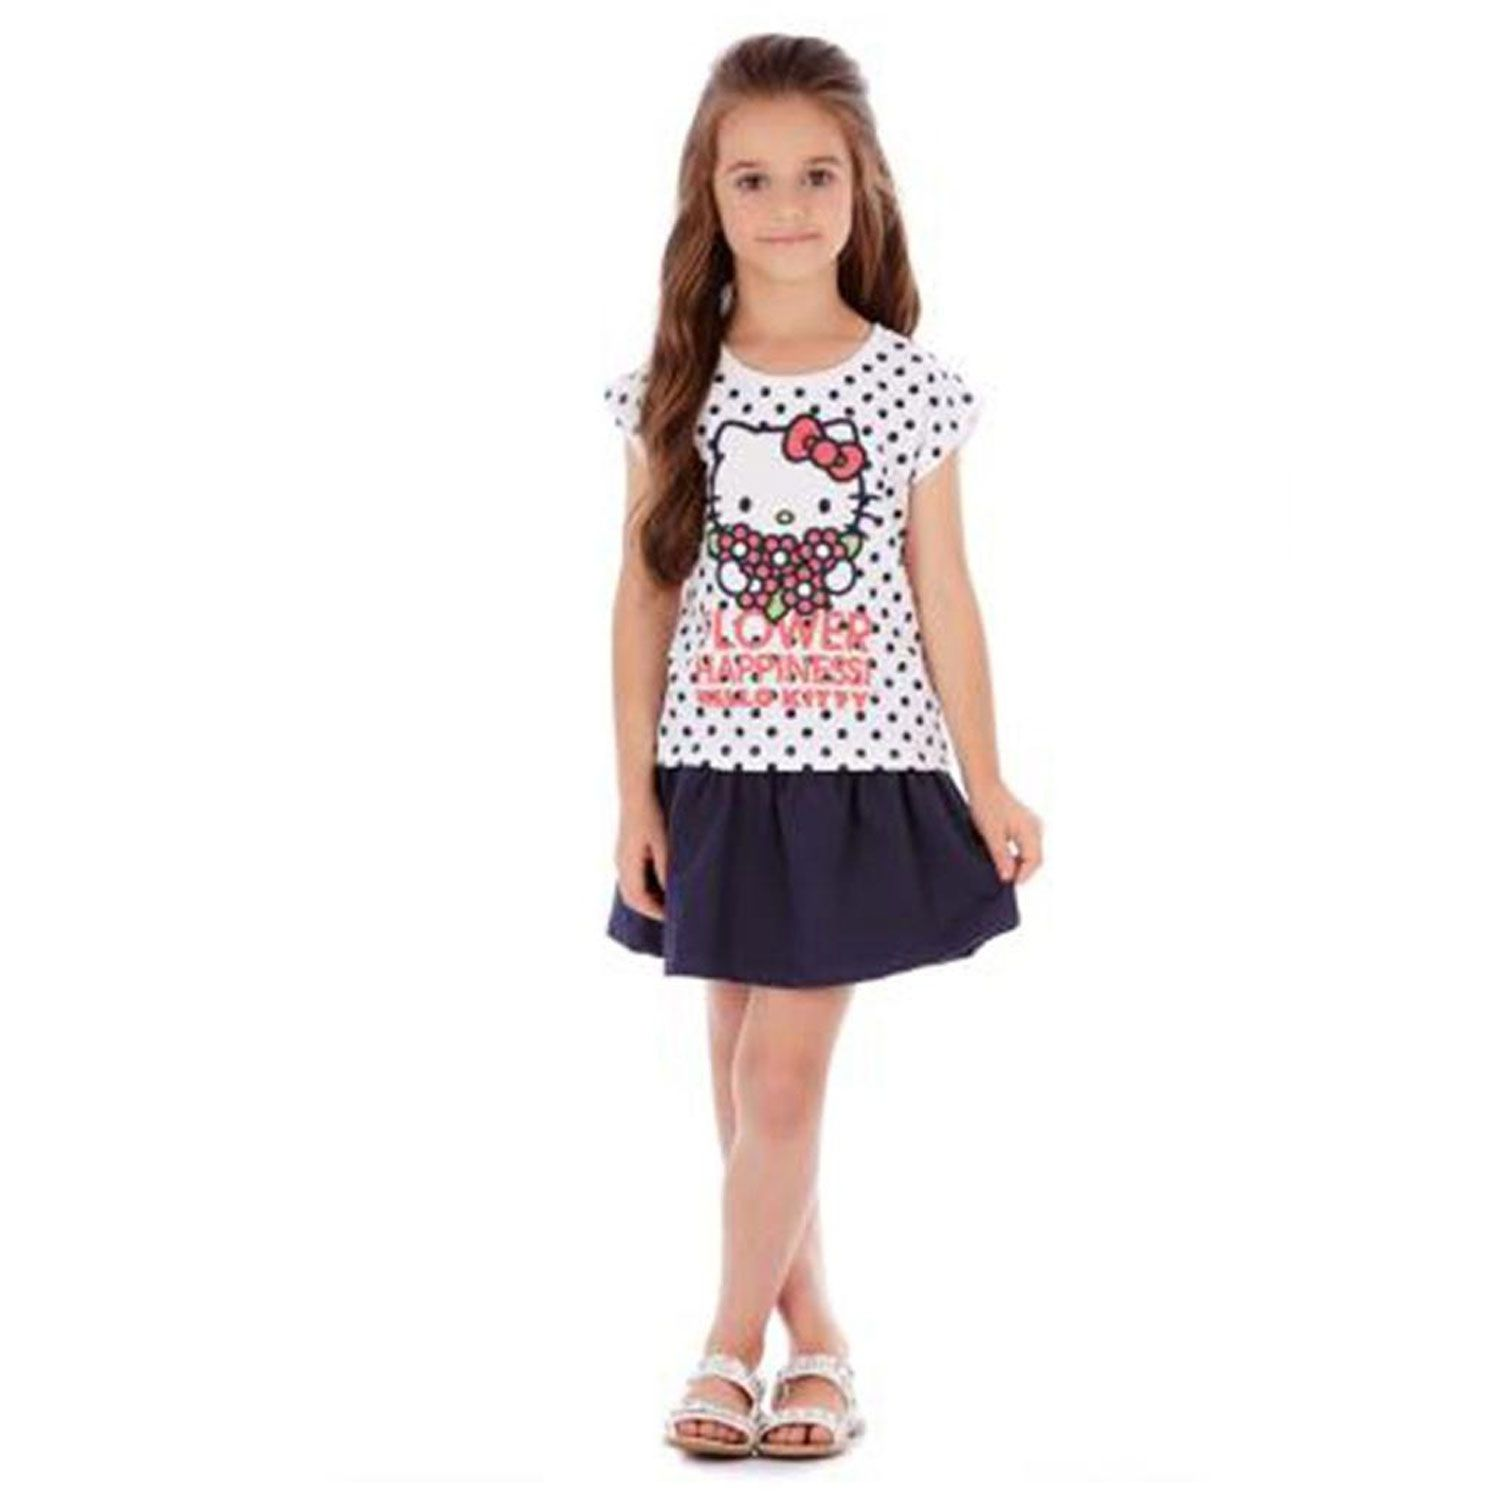 BLUSINHA HELLO KITTY REF:87674 4/8